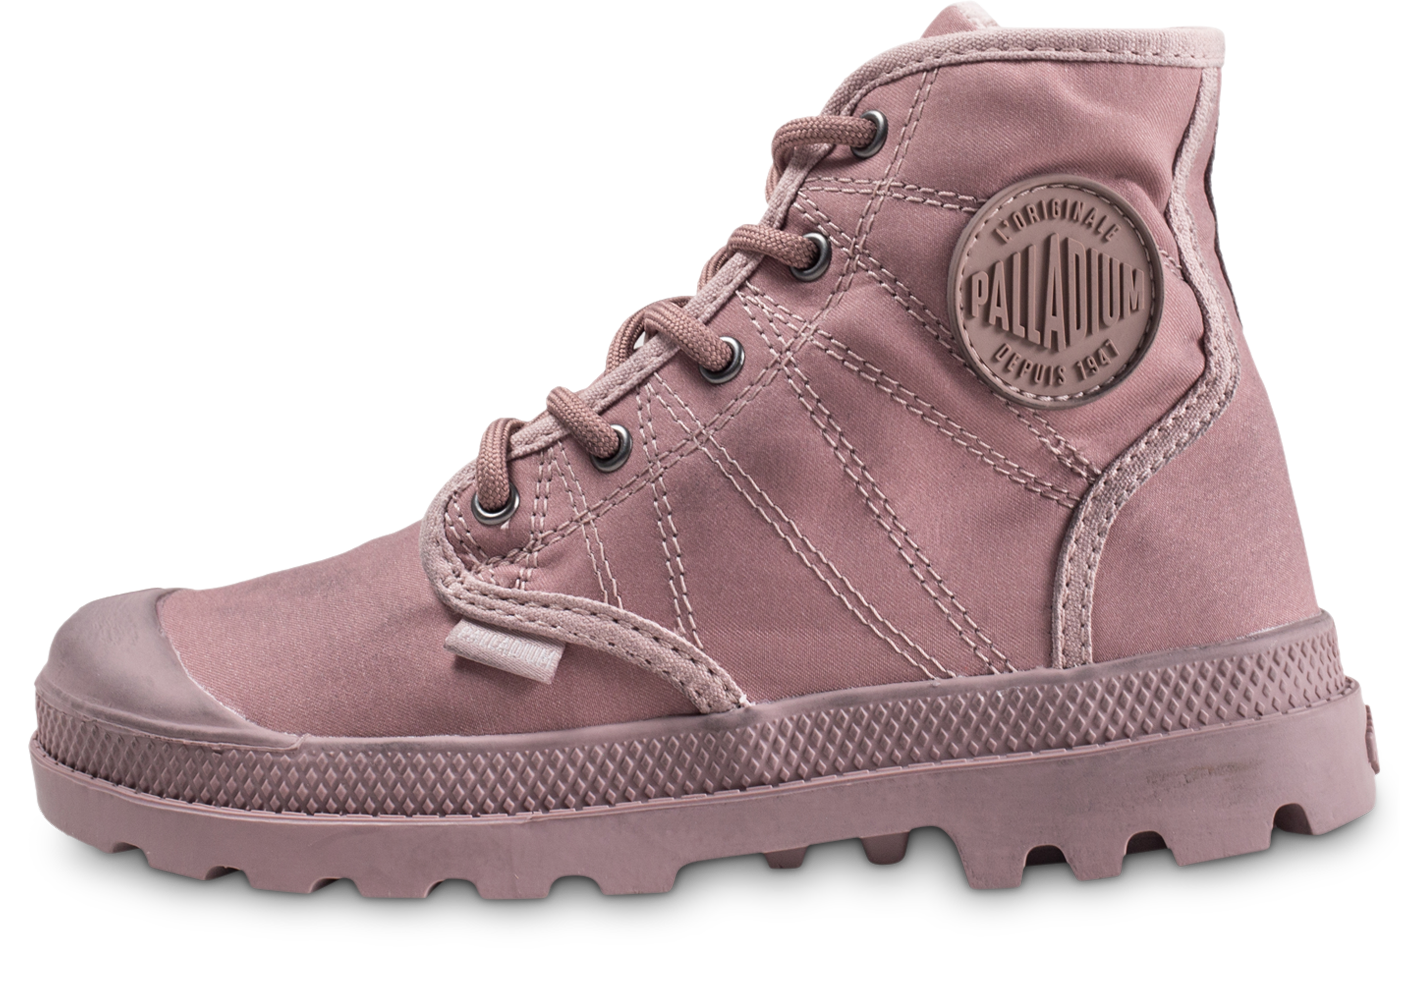 Palladium pampa hi rose enfant boots